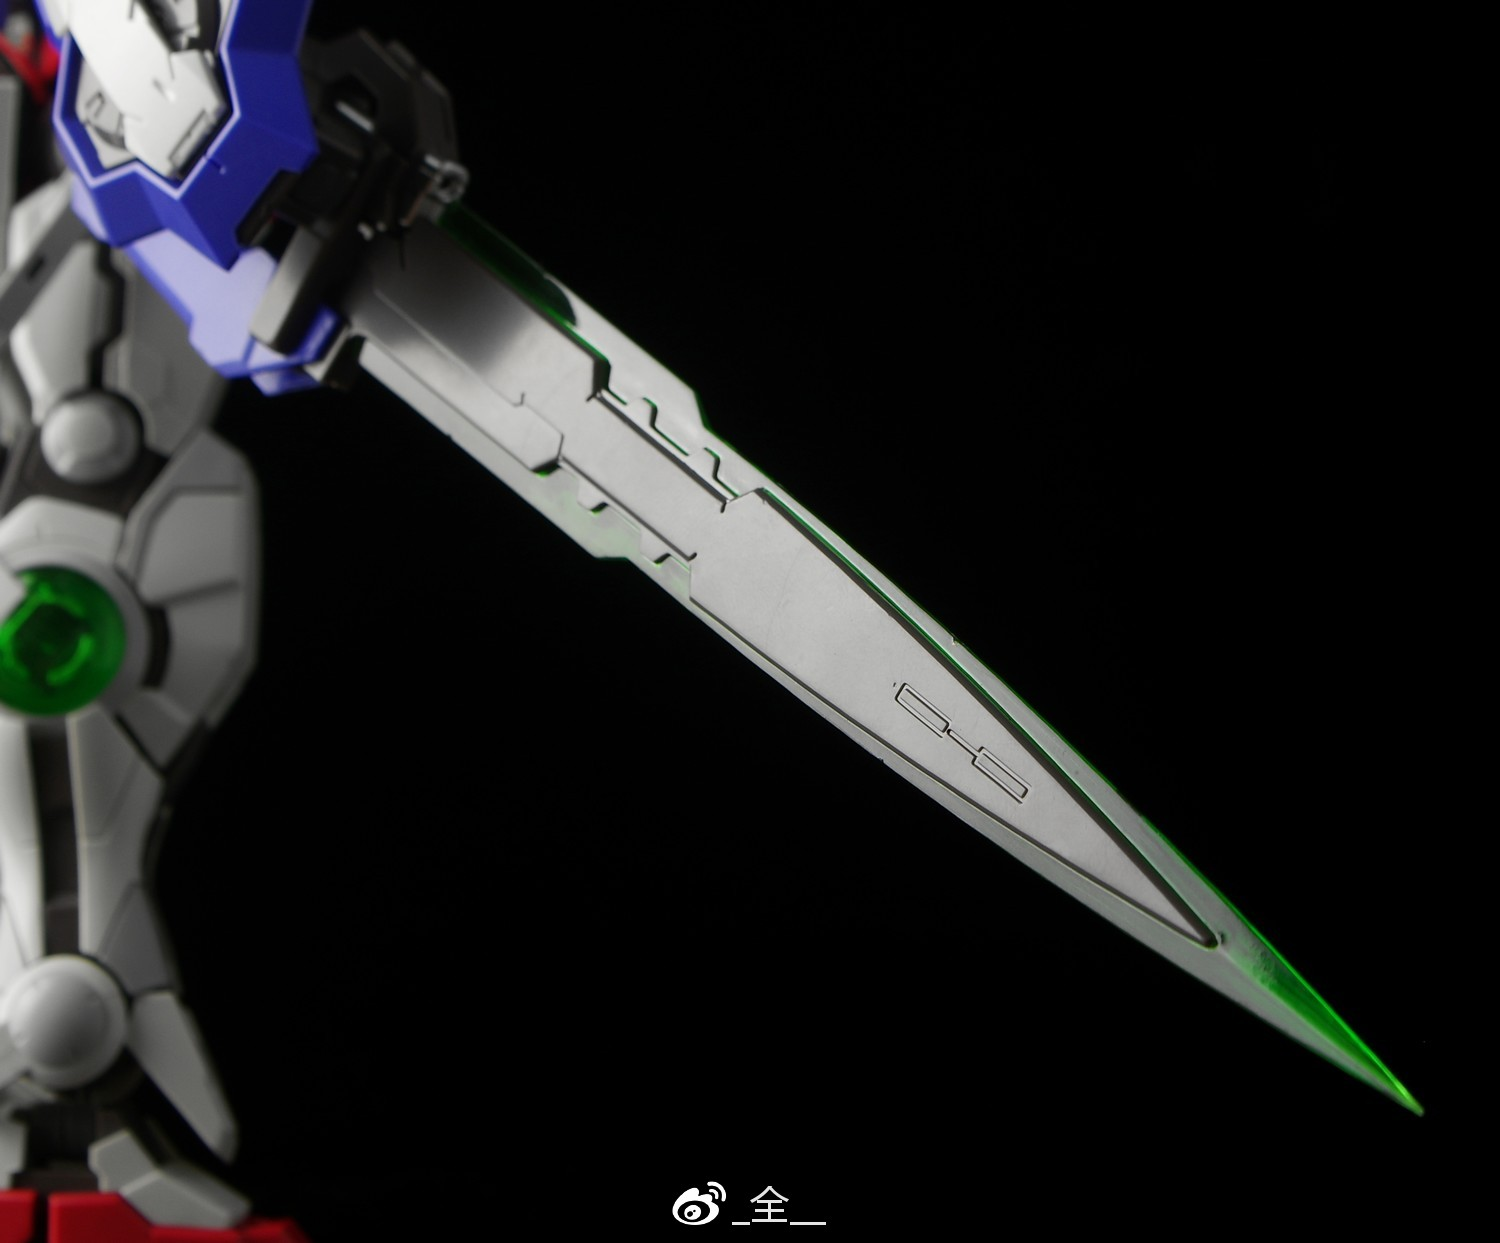 S269_mg_exia_led_hobby_star_inask_093.jpg